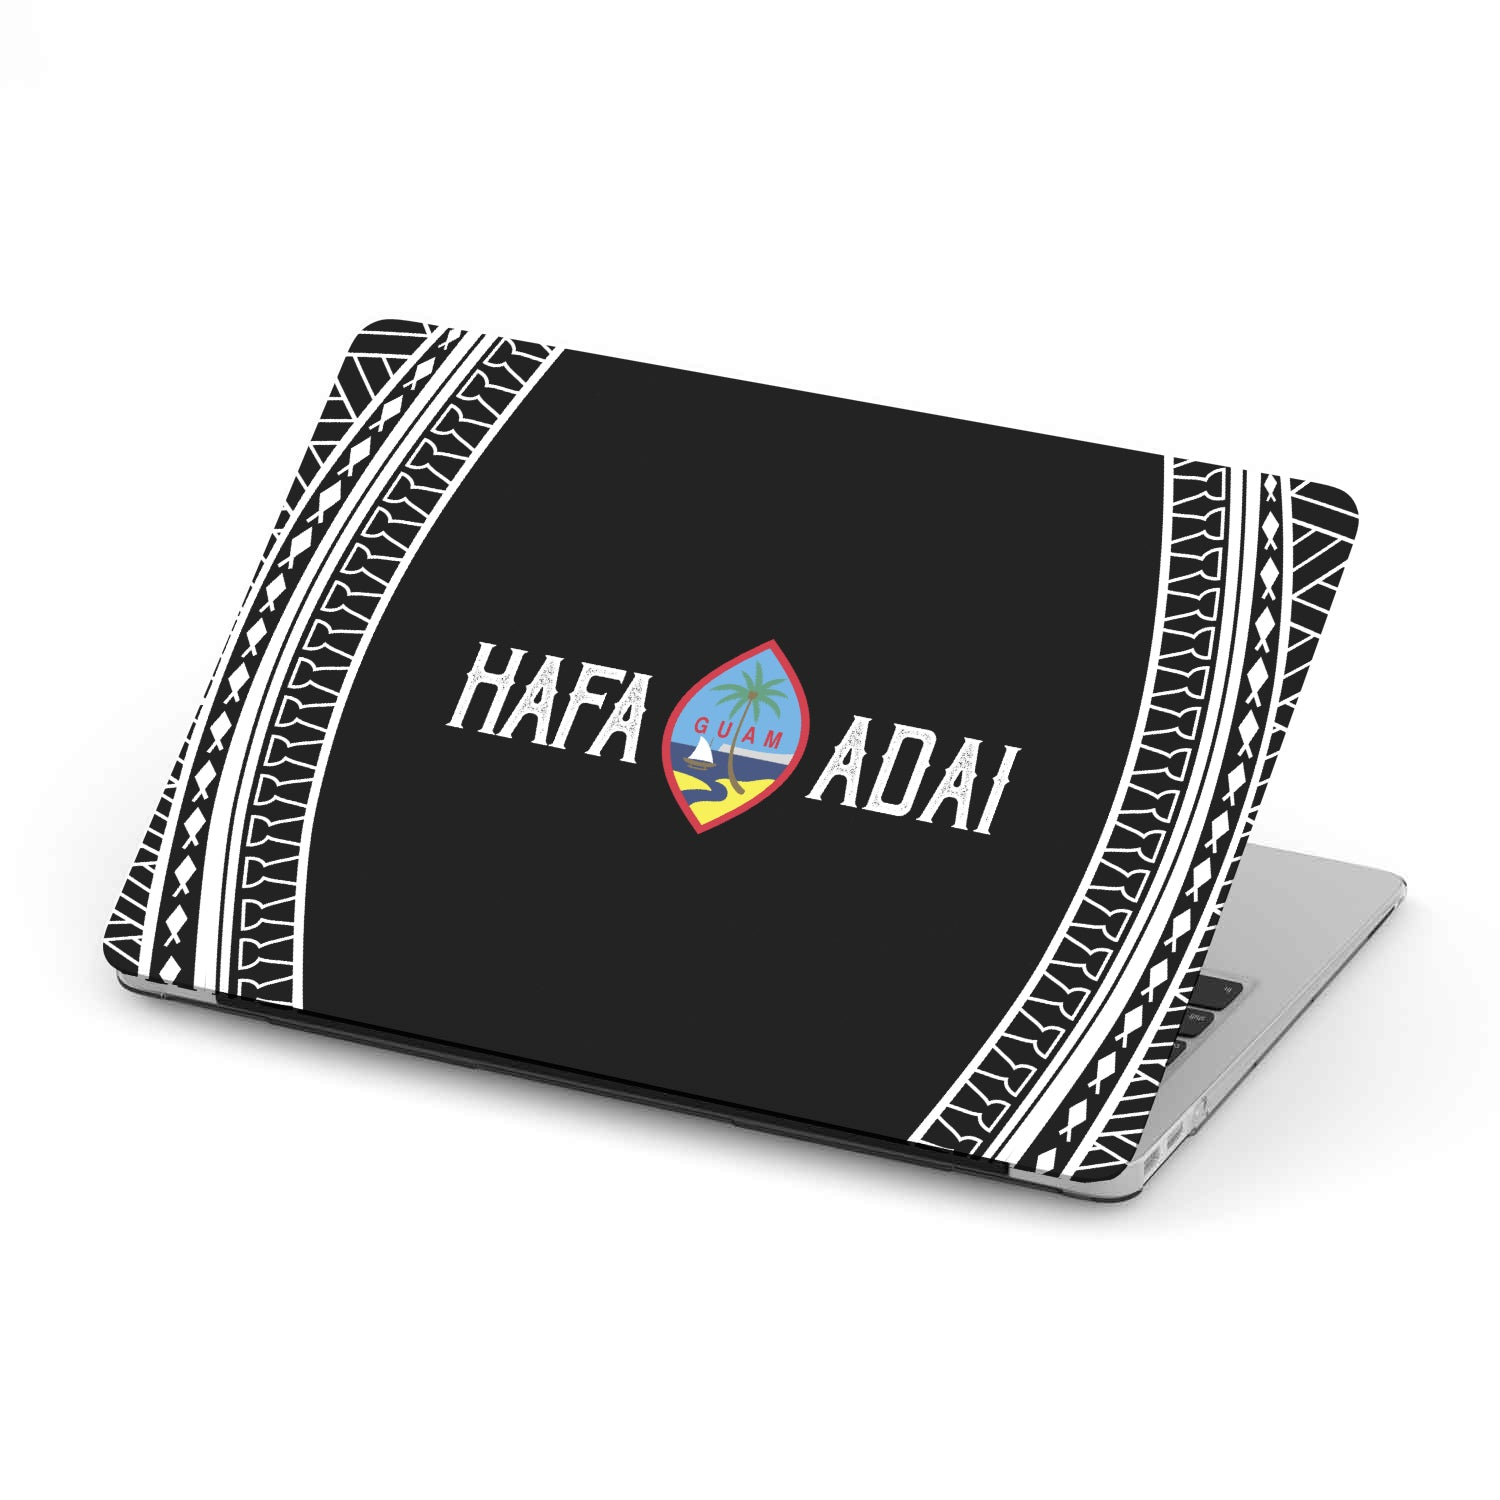 Hafa Adai Tribal MacBook Case